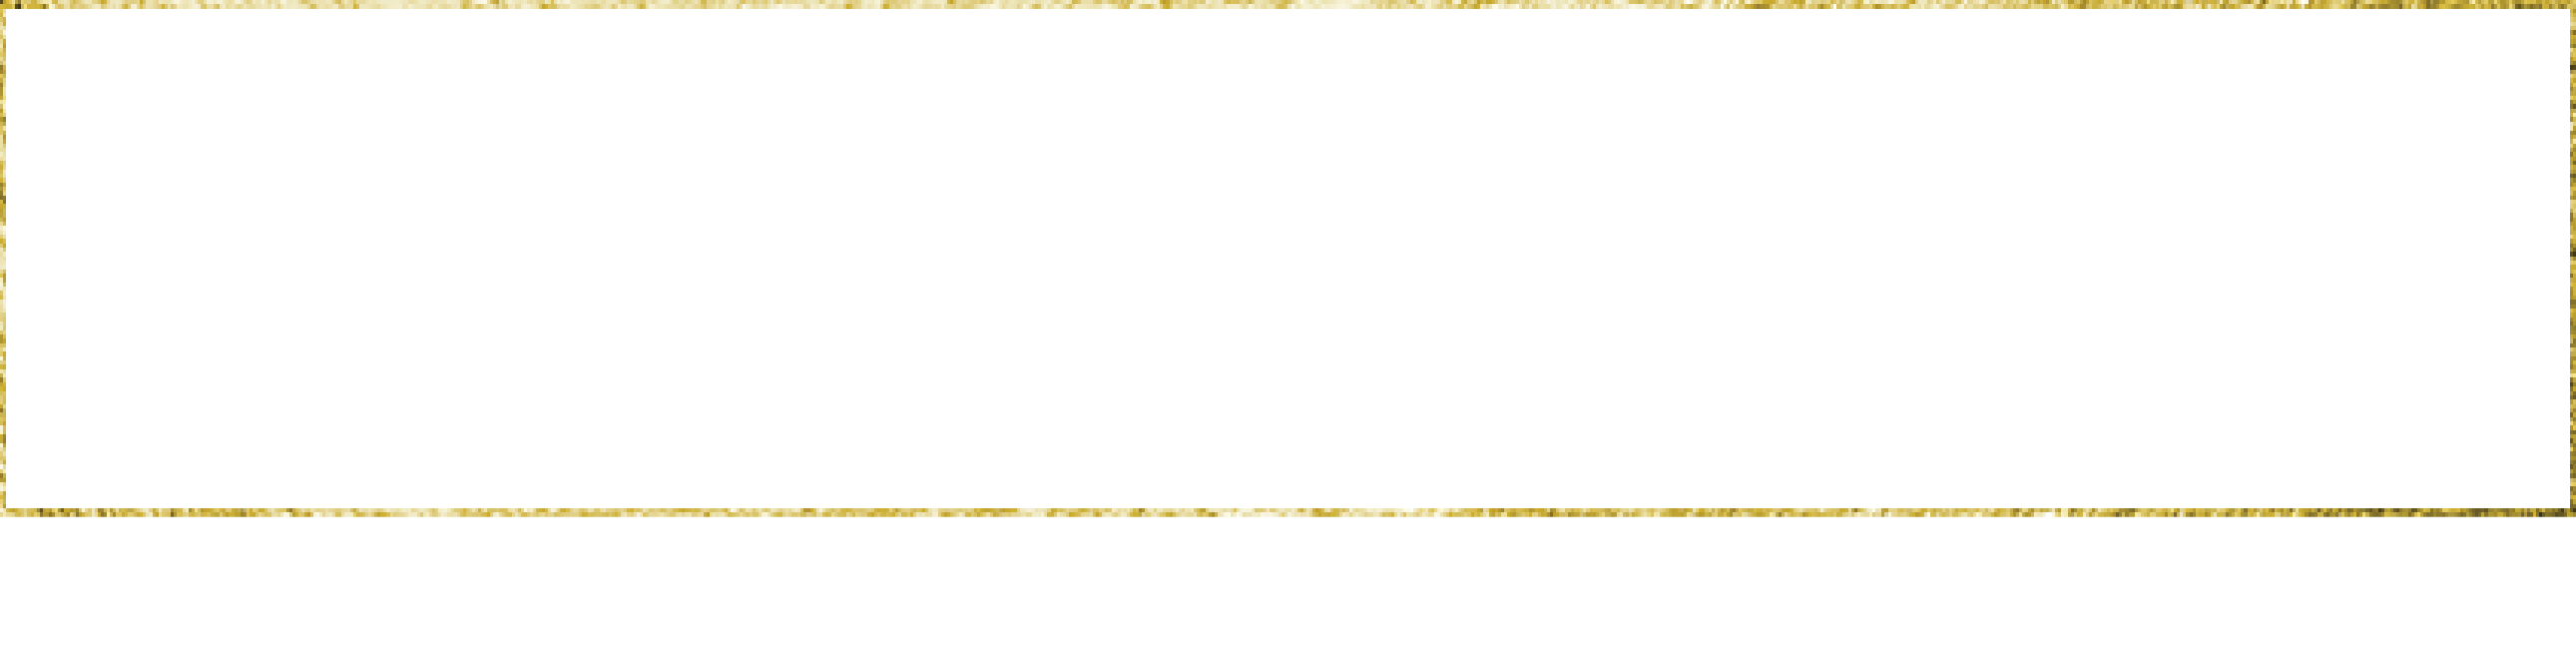 CATFISH-TUESDAY-word-banner-gold